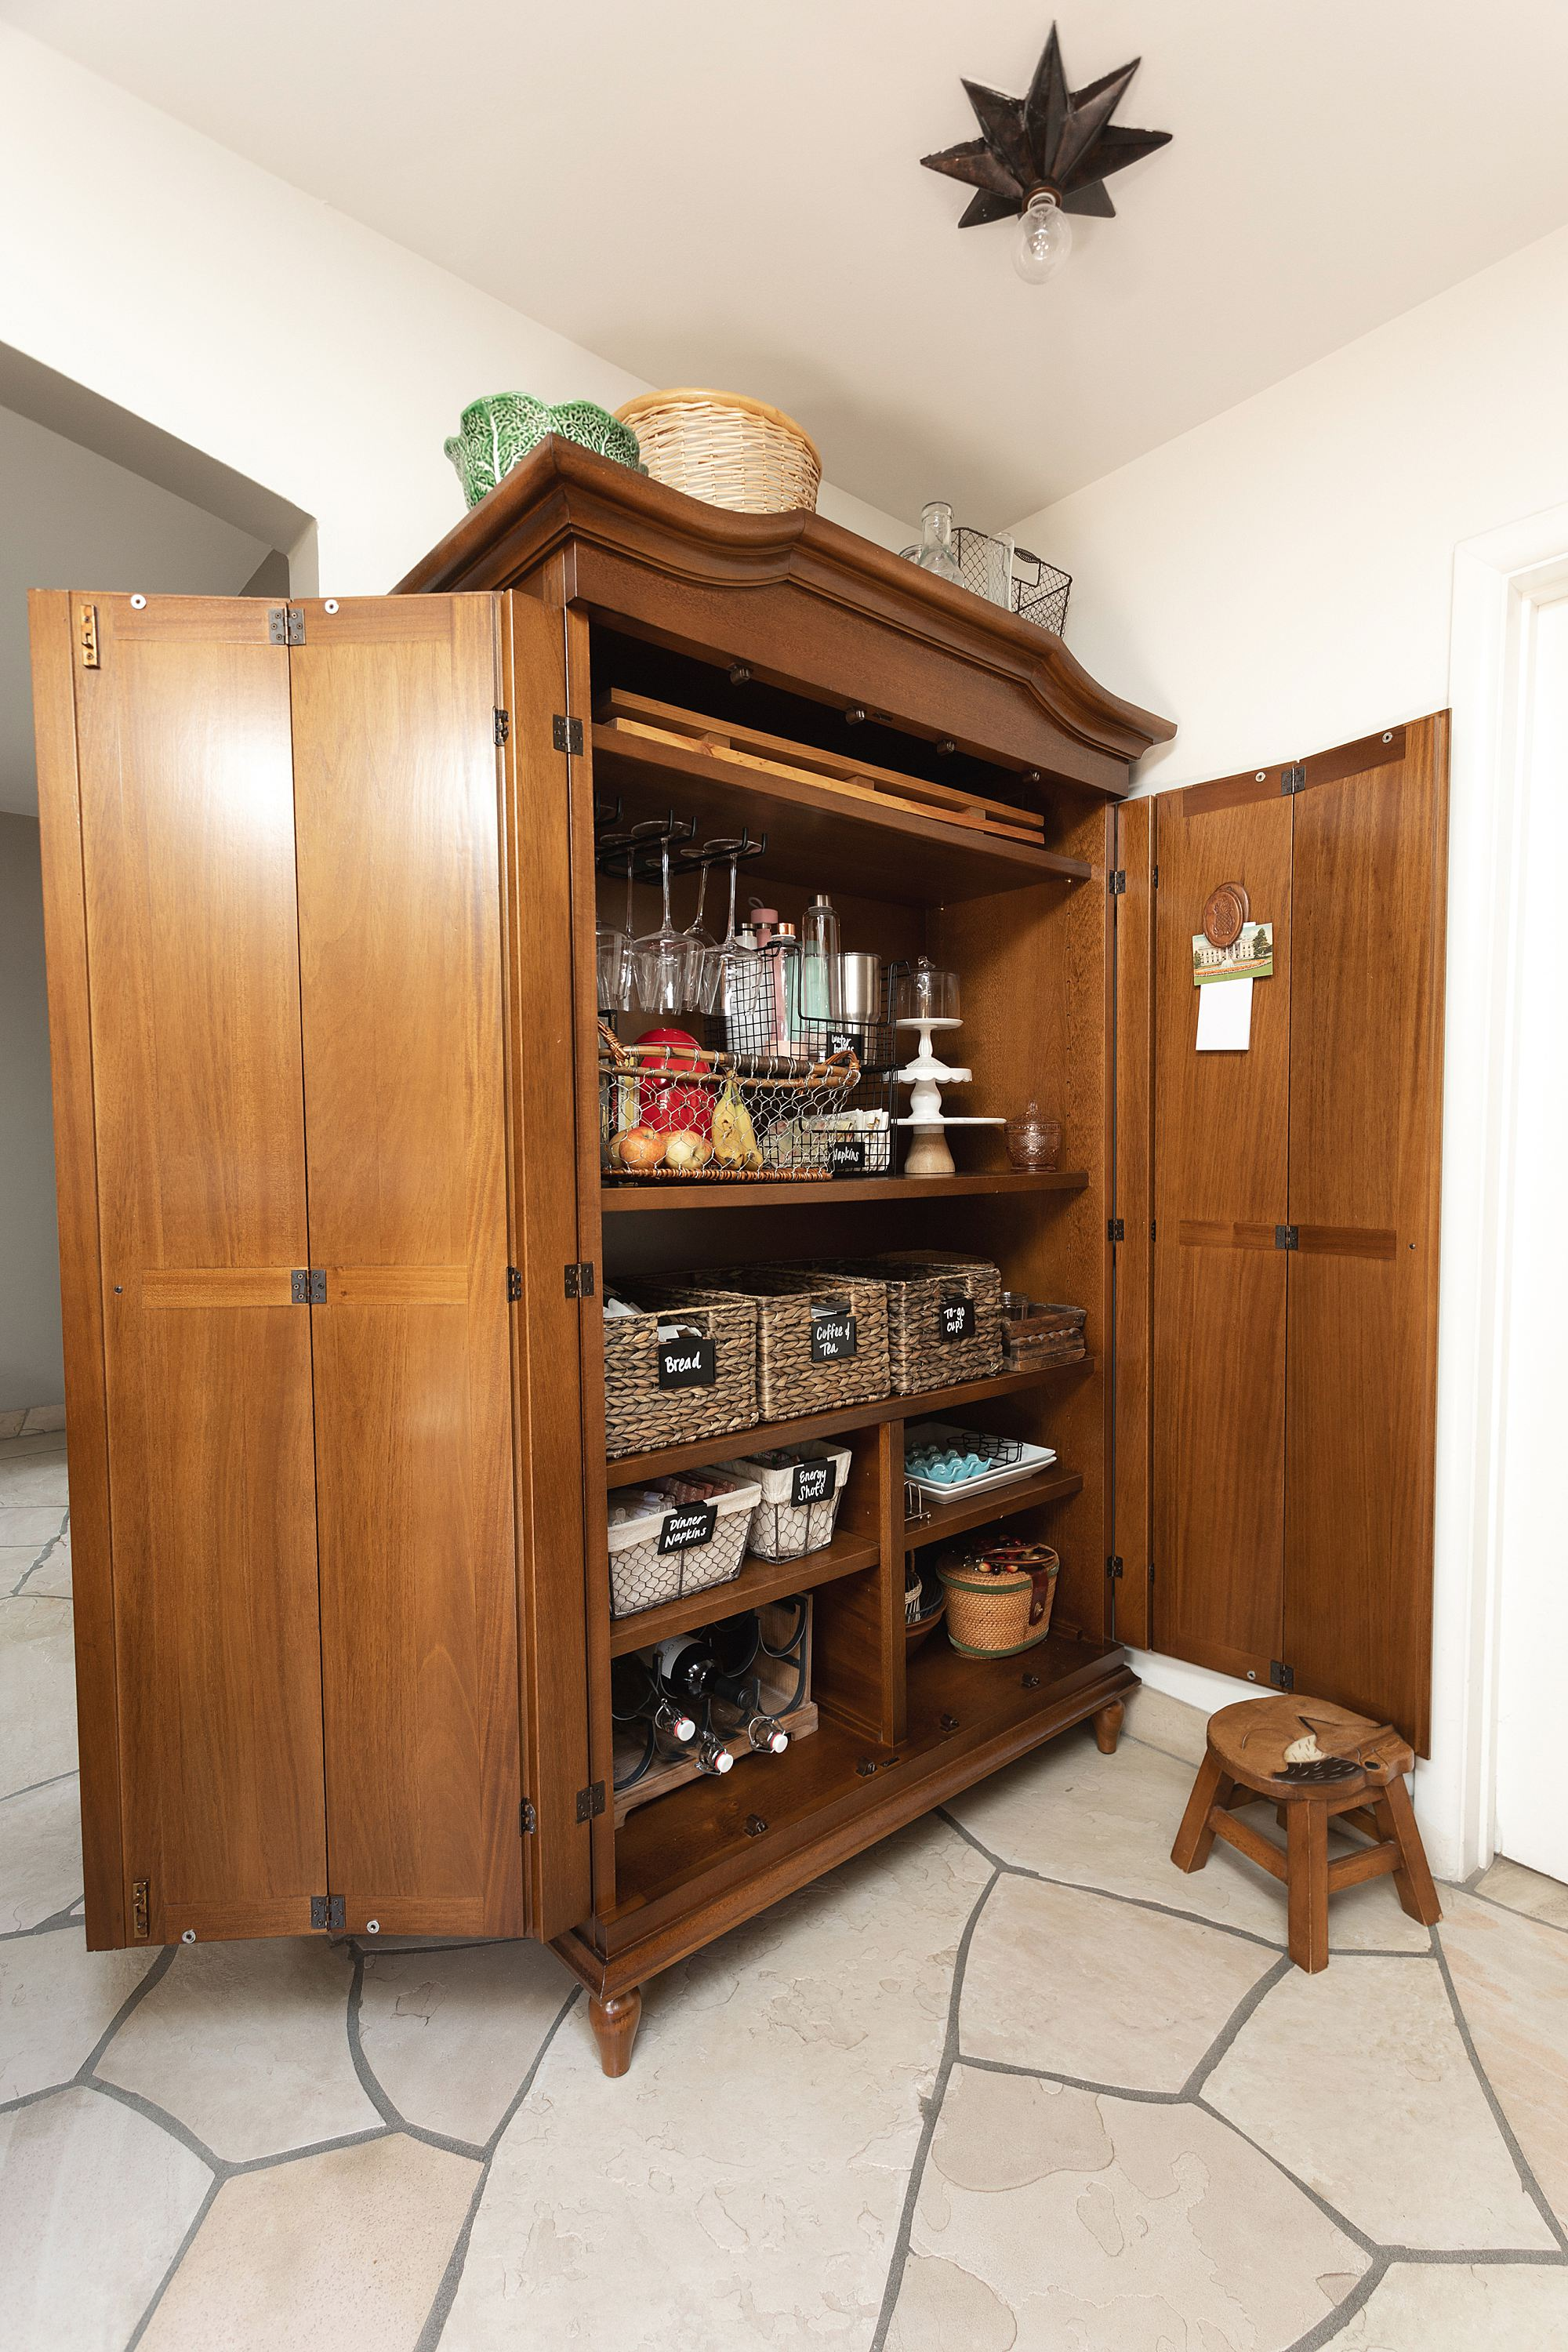 kitchen armoire pantry from Ballard Designs brown furniture wood Casa Florentina Josephina Bonnet Top Armoire